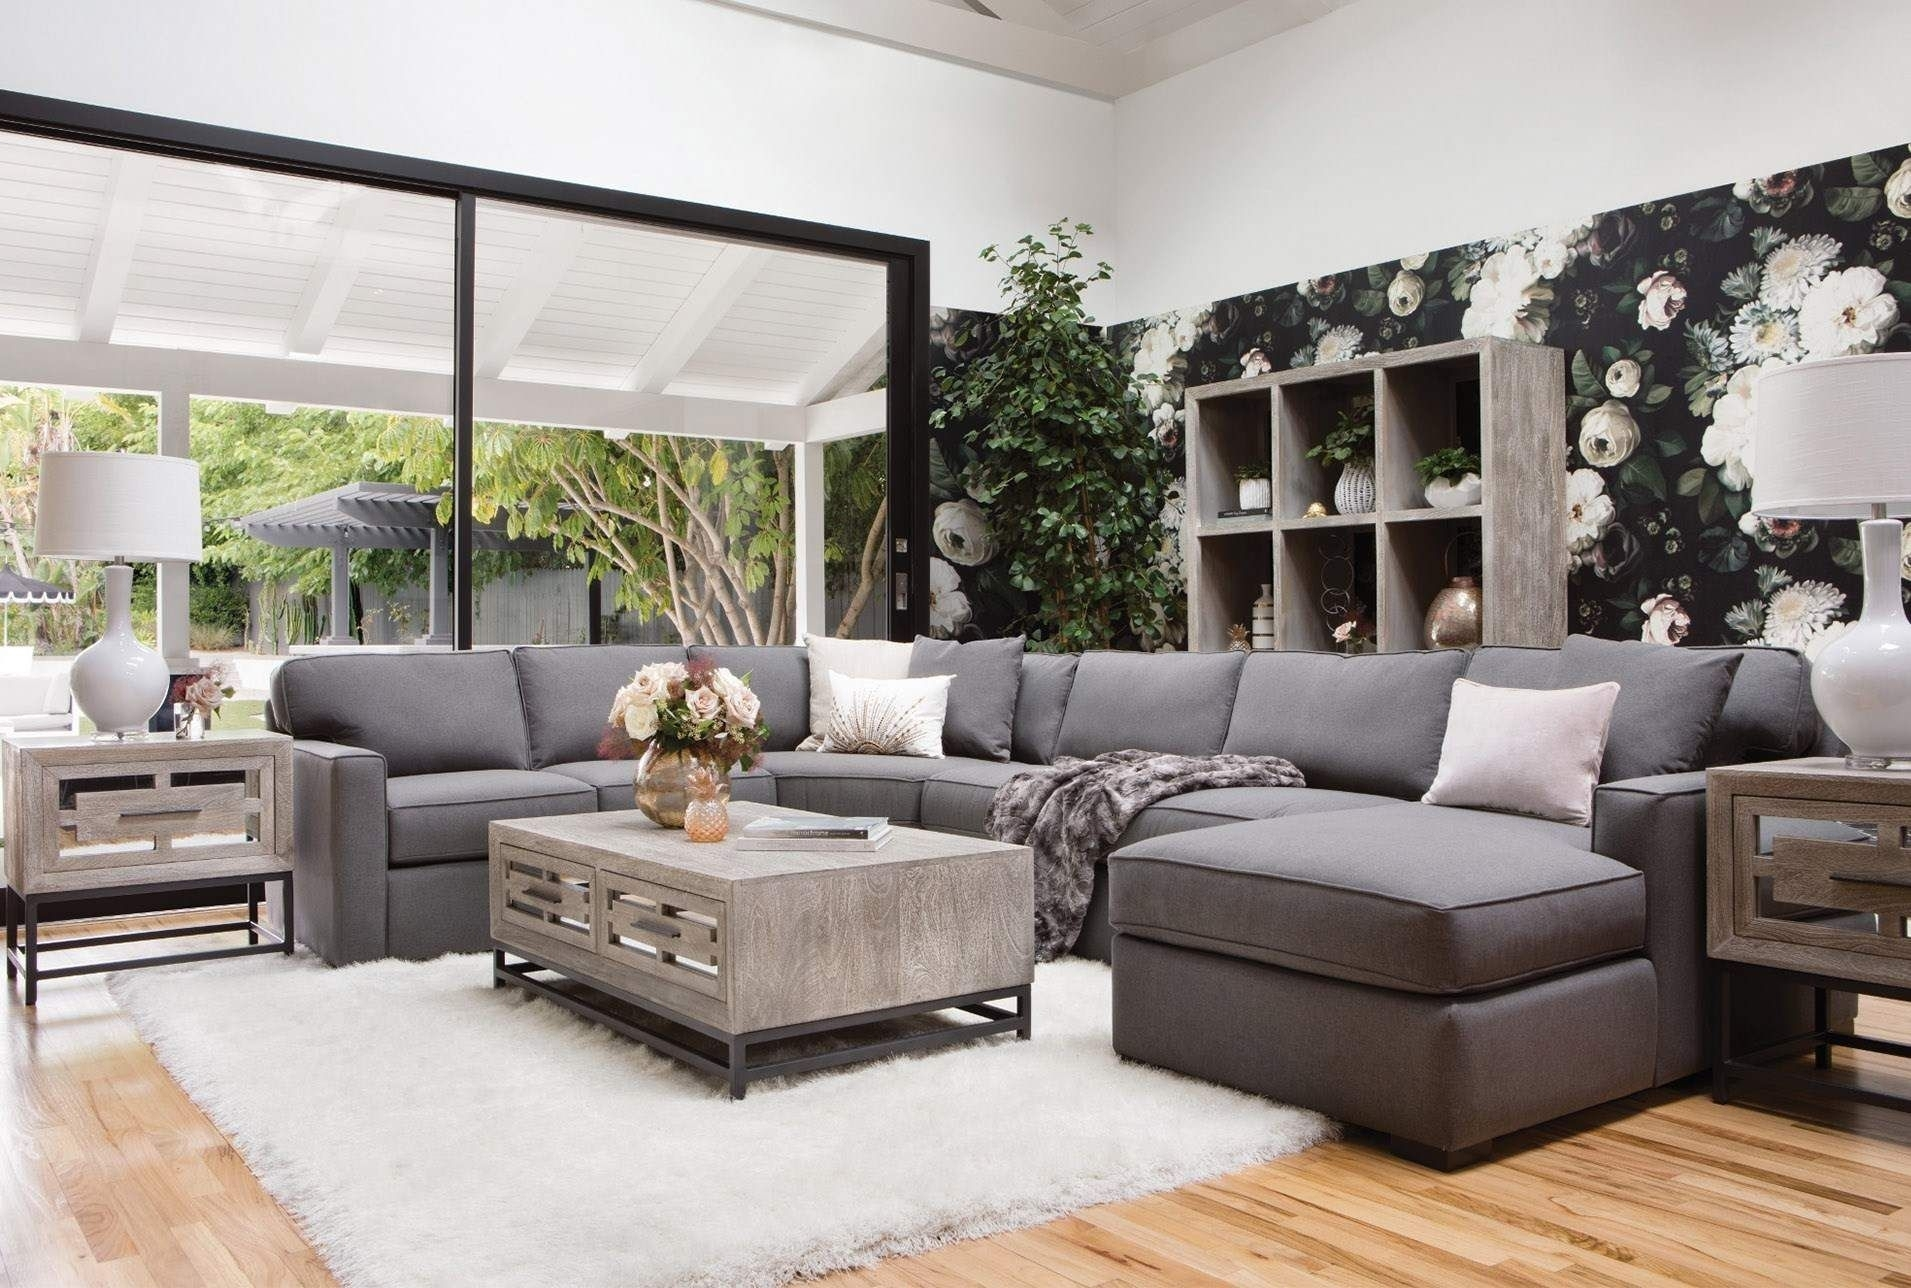 Alder 4 Piece Sectional, Sofas | Pinterest | Living Room Ideas, Room Pertaining To Alder 4 Piece Sectionals (Image 7 of 25)